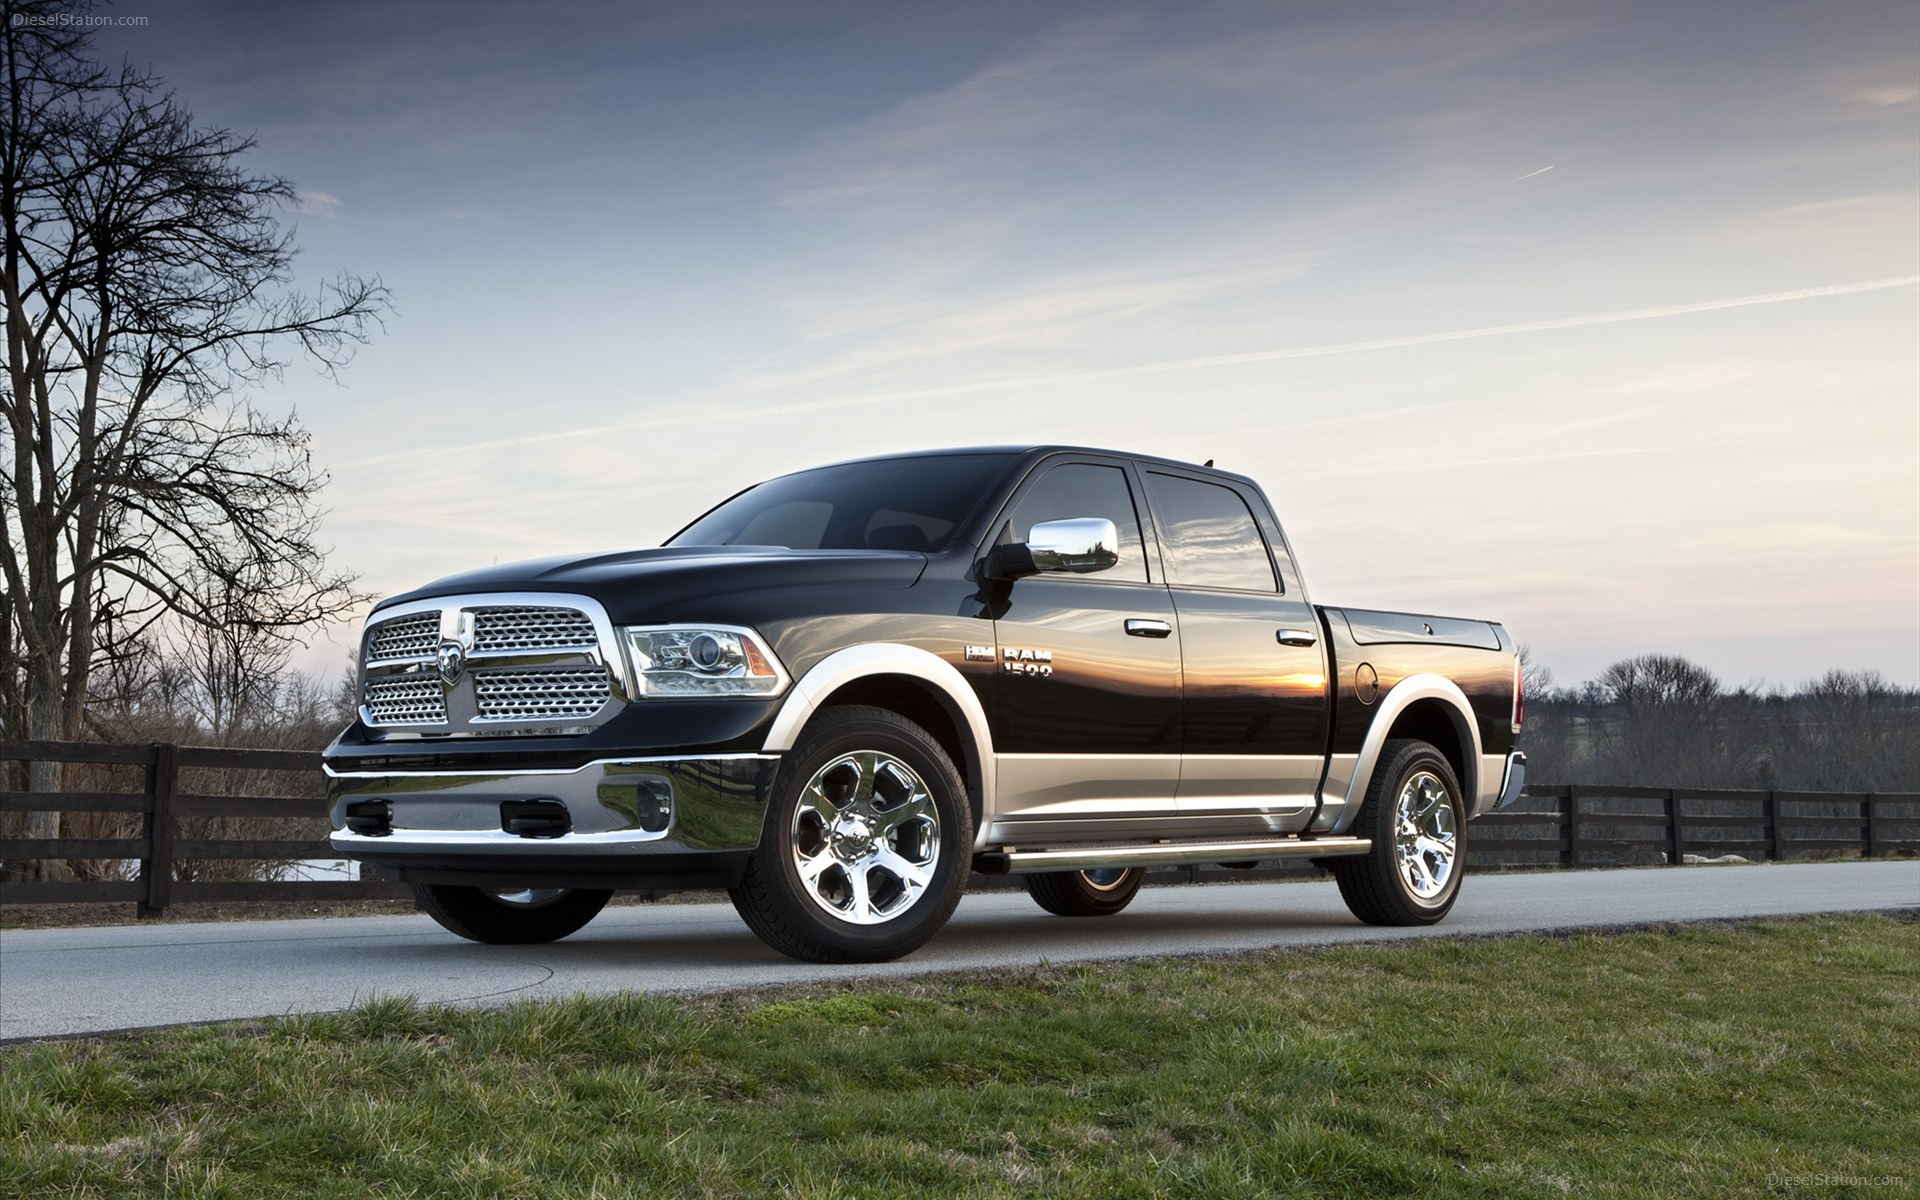 Dodge ram photo - 2